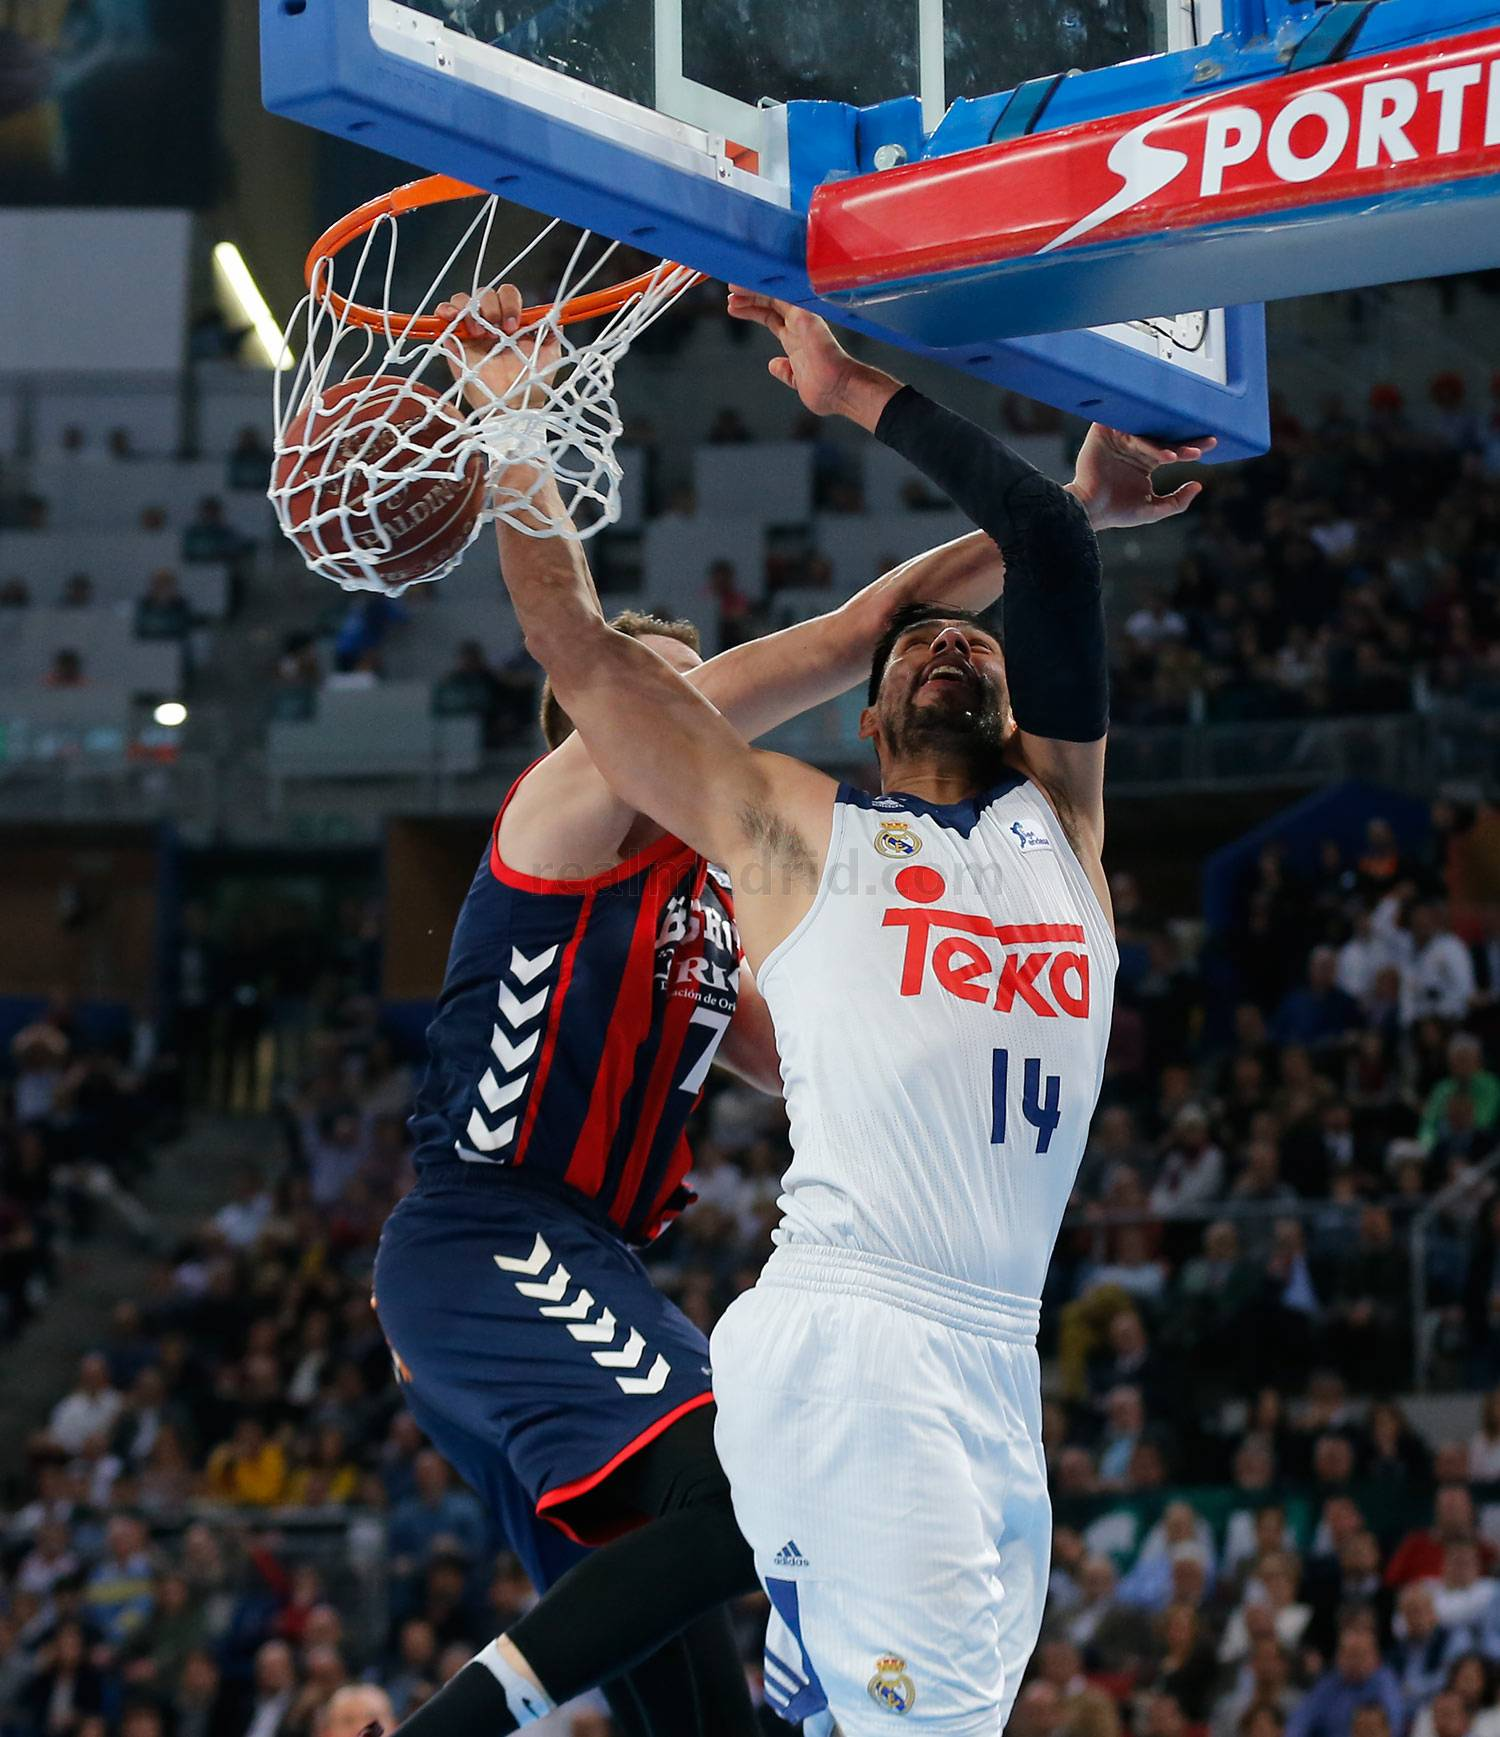 Baskonia - Real Madrid. Copa del Rey semi-final | Photos | Real Madrid ...